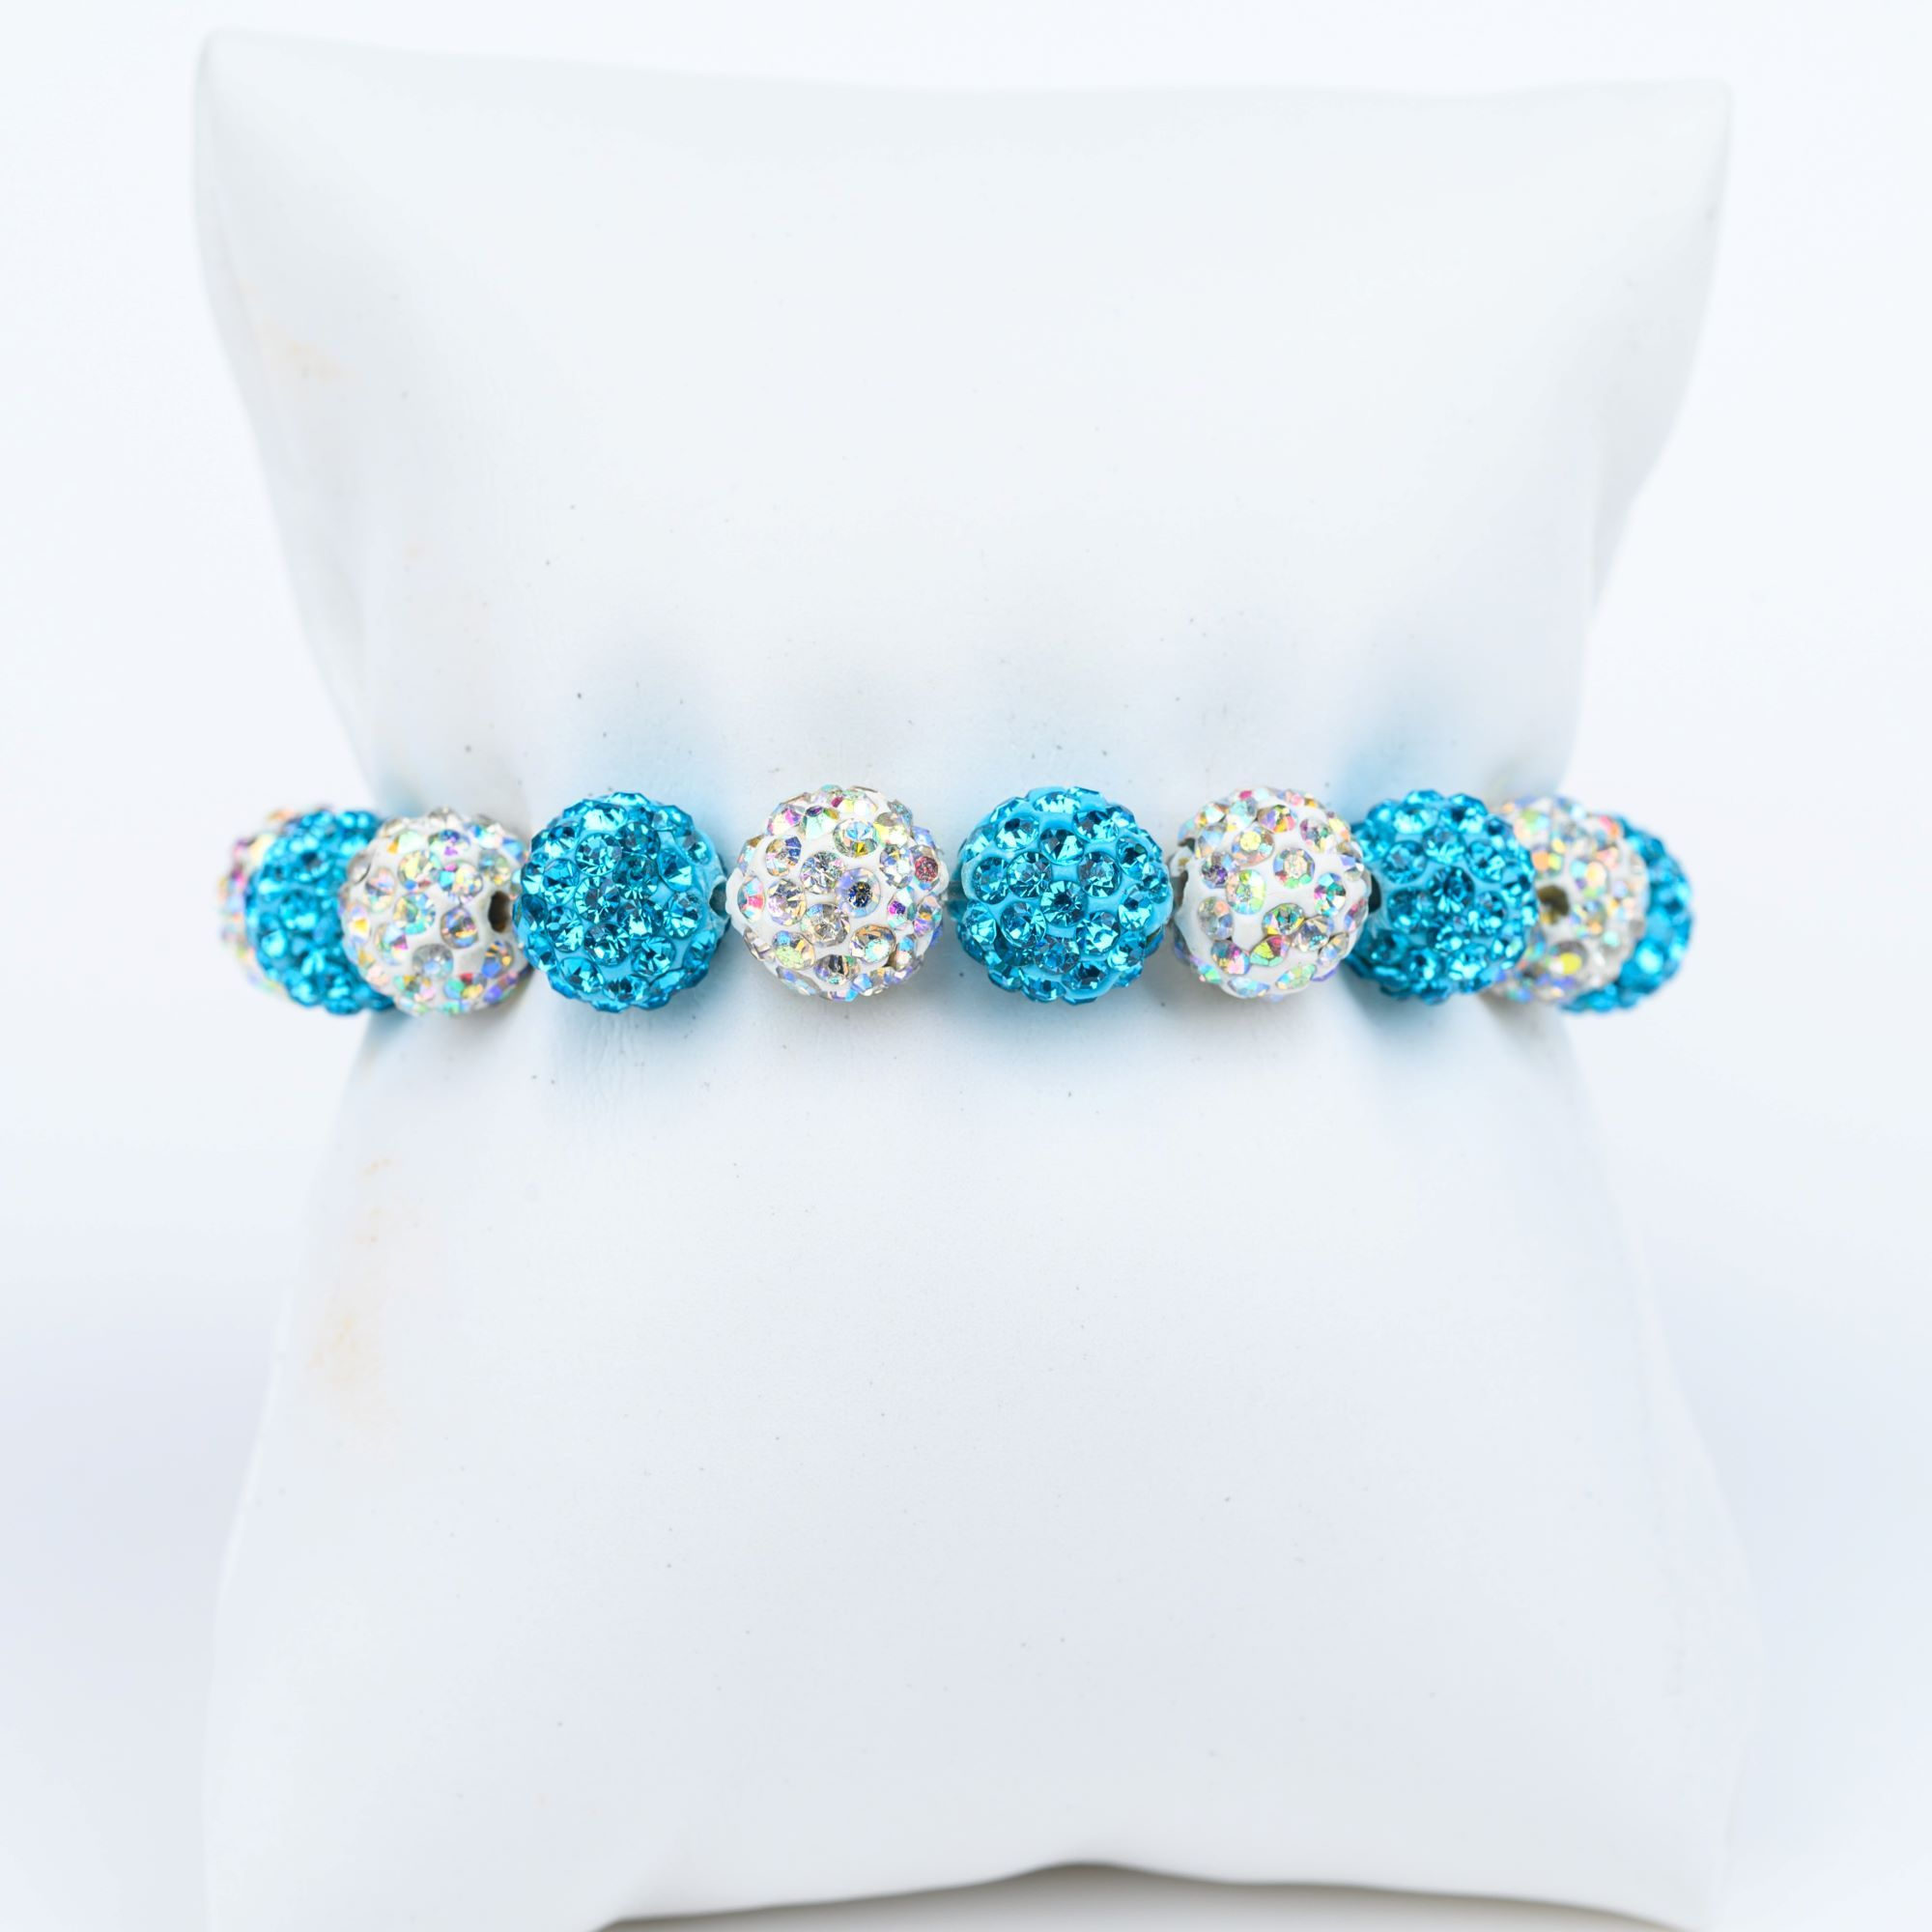 ME™ Glam 7-inch Bracelet - Blue Show Your Africa